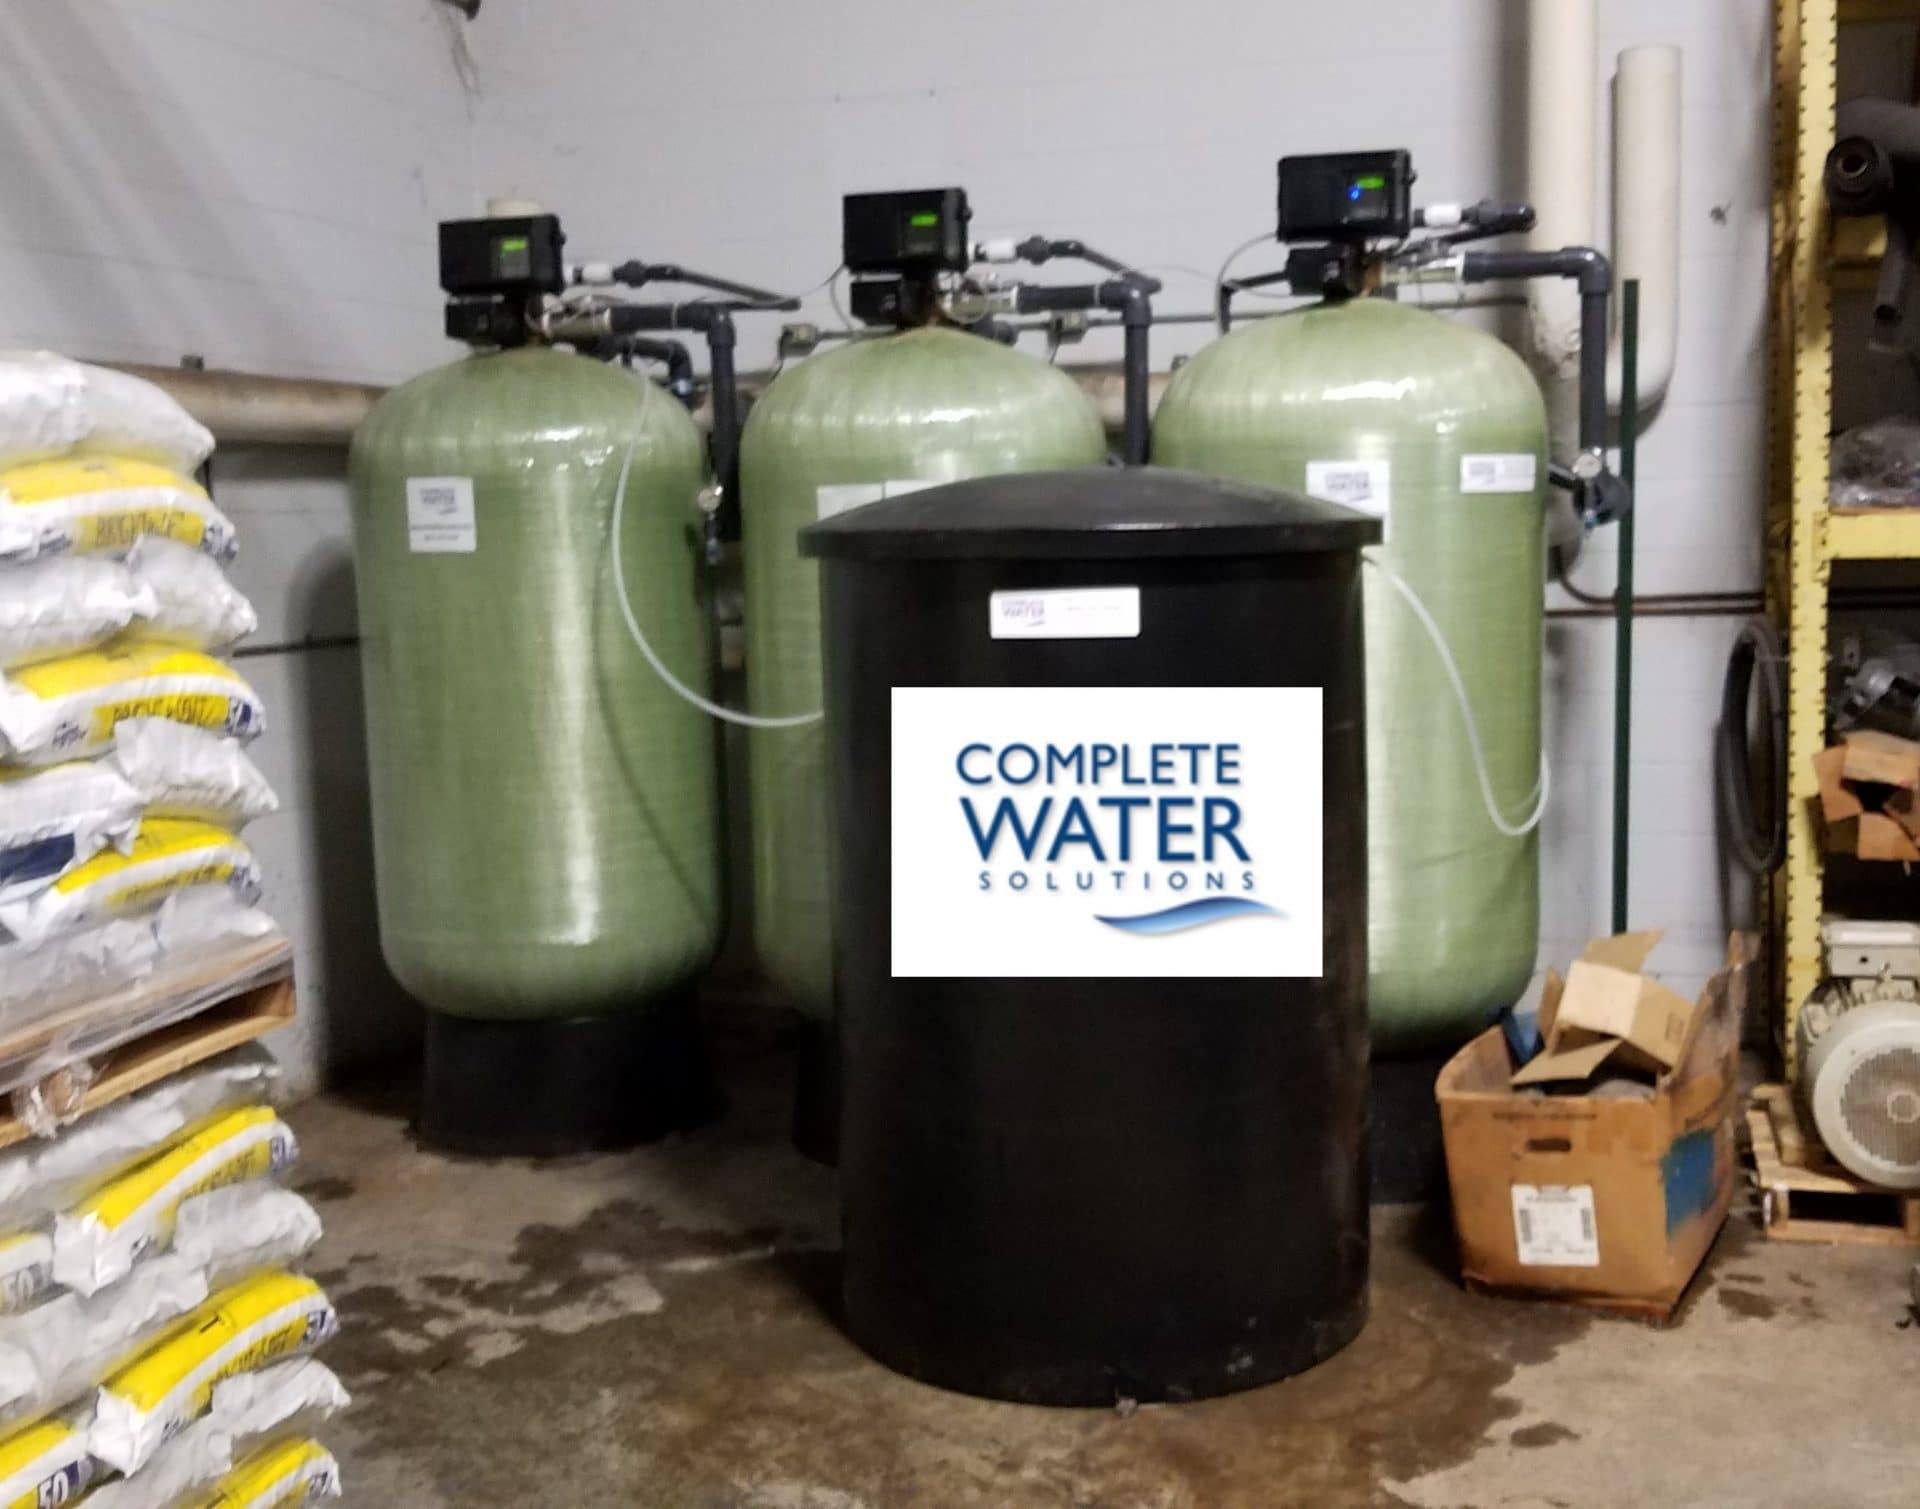 complete water solutions, industrial water softener, industrial water softener upgrade